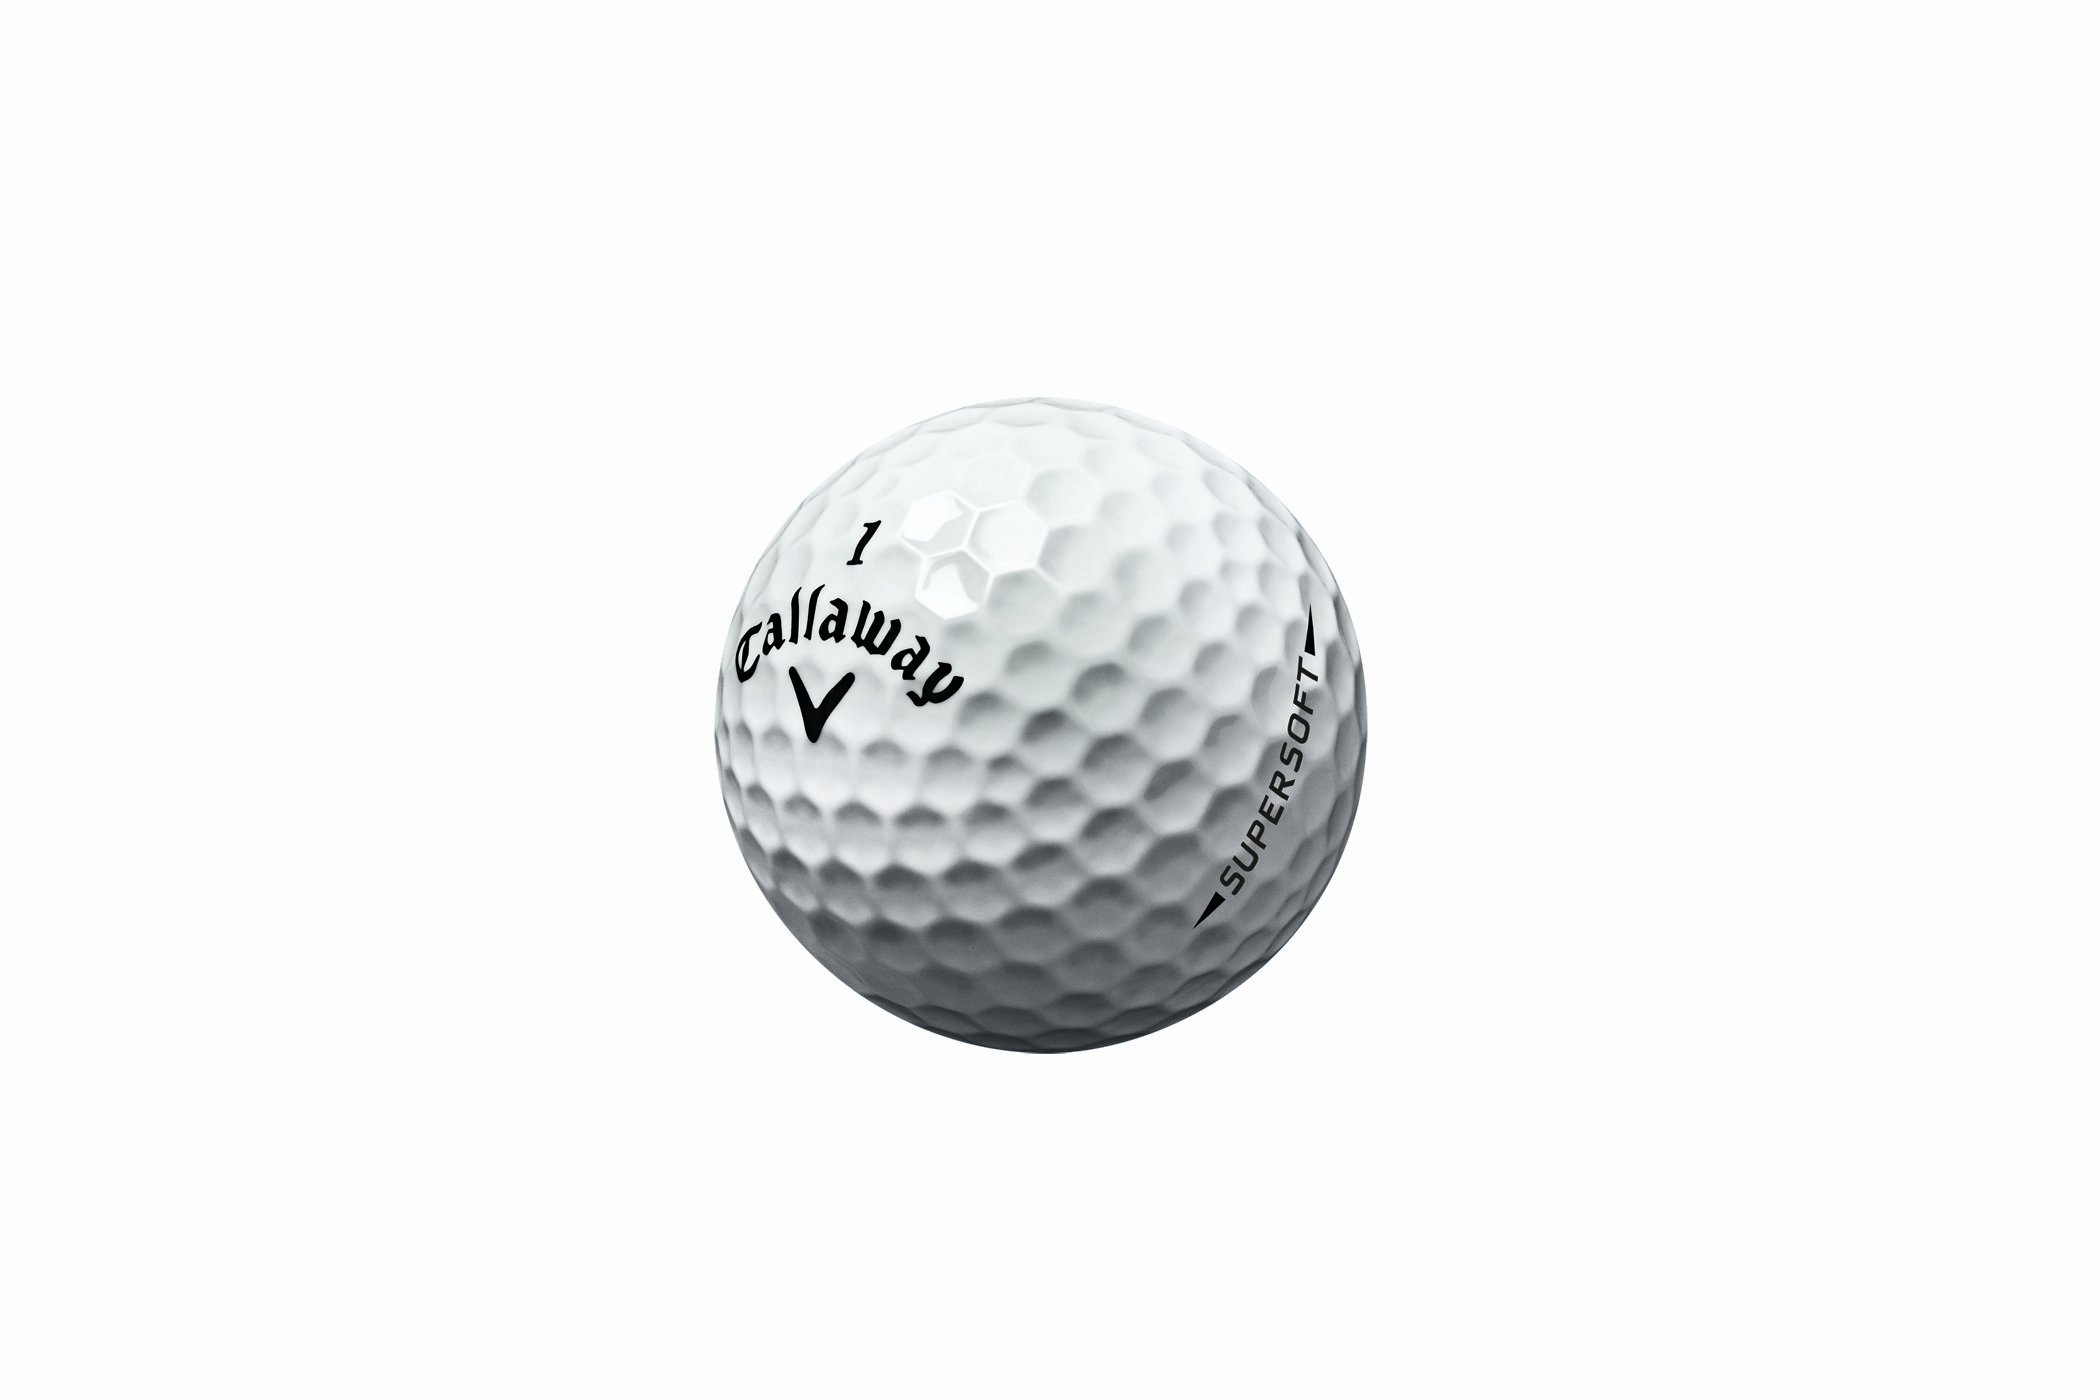 Callaway Super Soft Golf Balls, White (Pack of 12) by Callaway